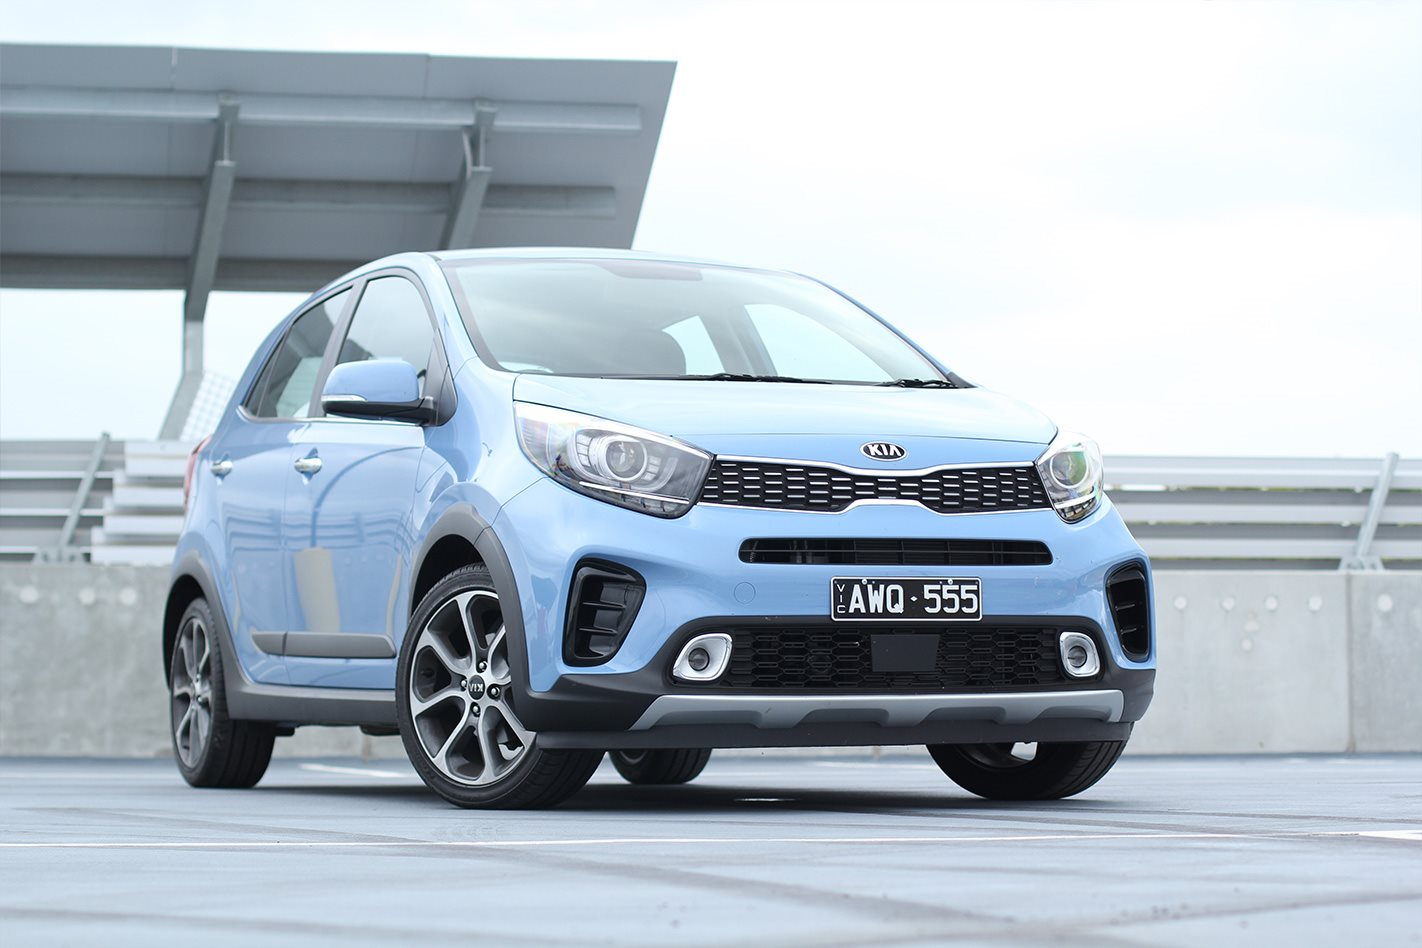 Kia Picanto X-Line Australian Open Edition quick review